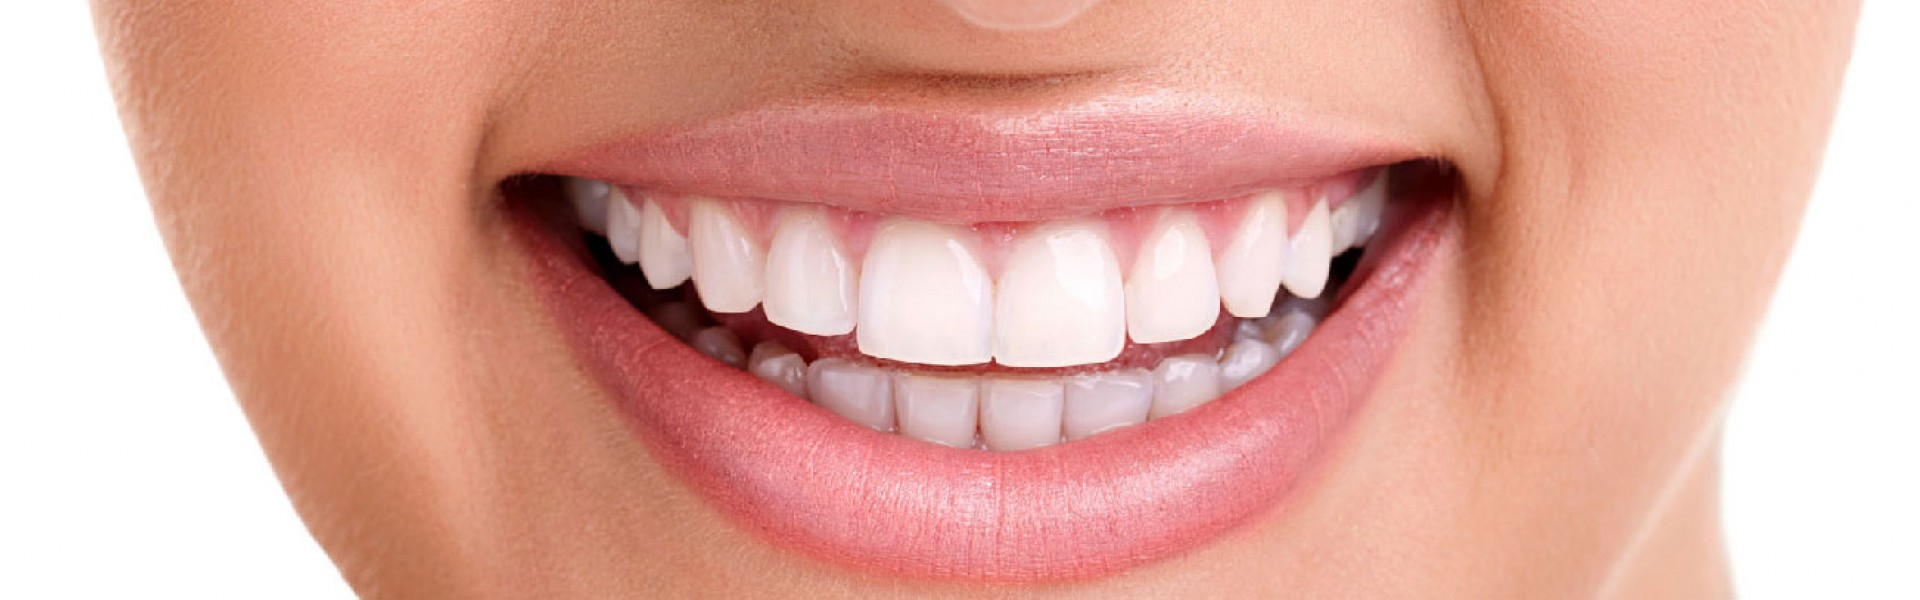 Clinical teeth whitening